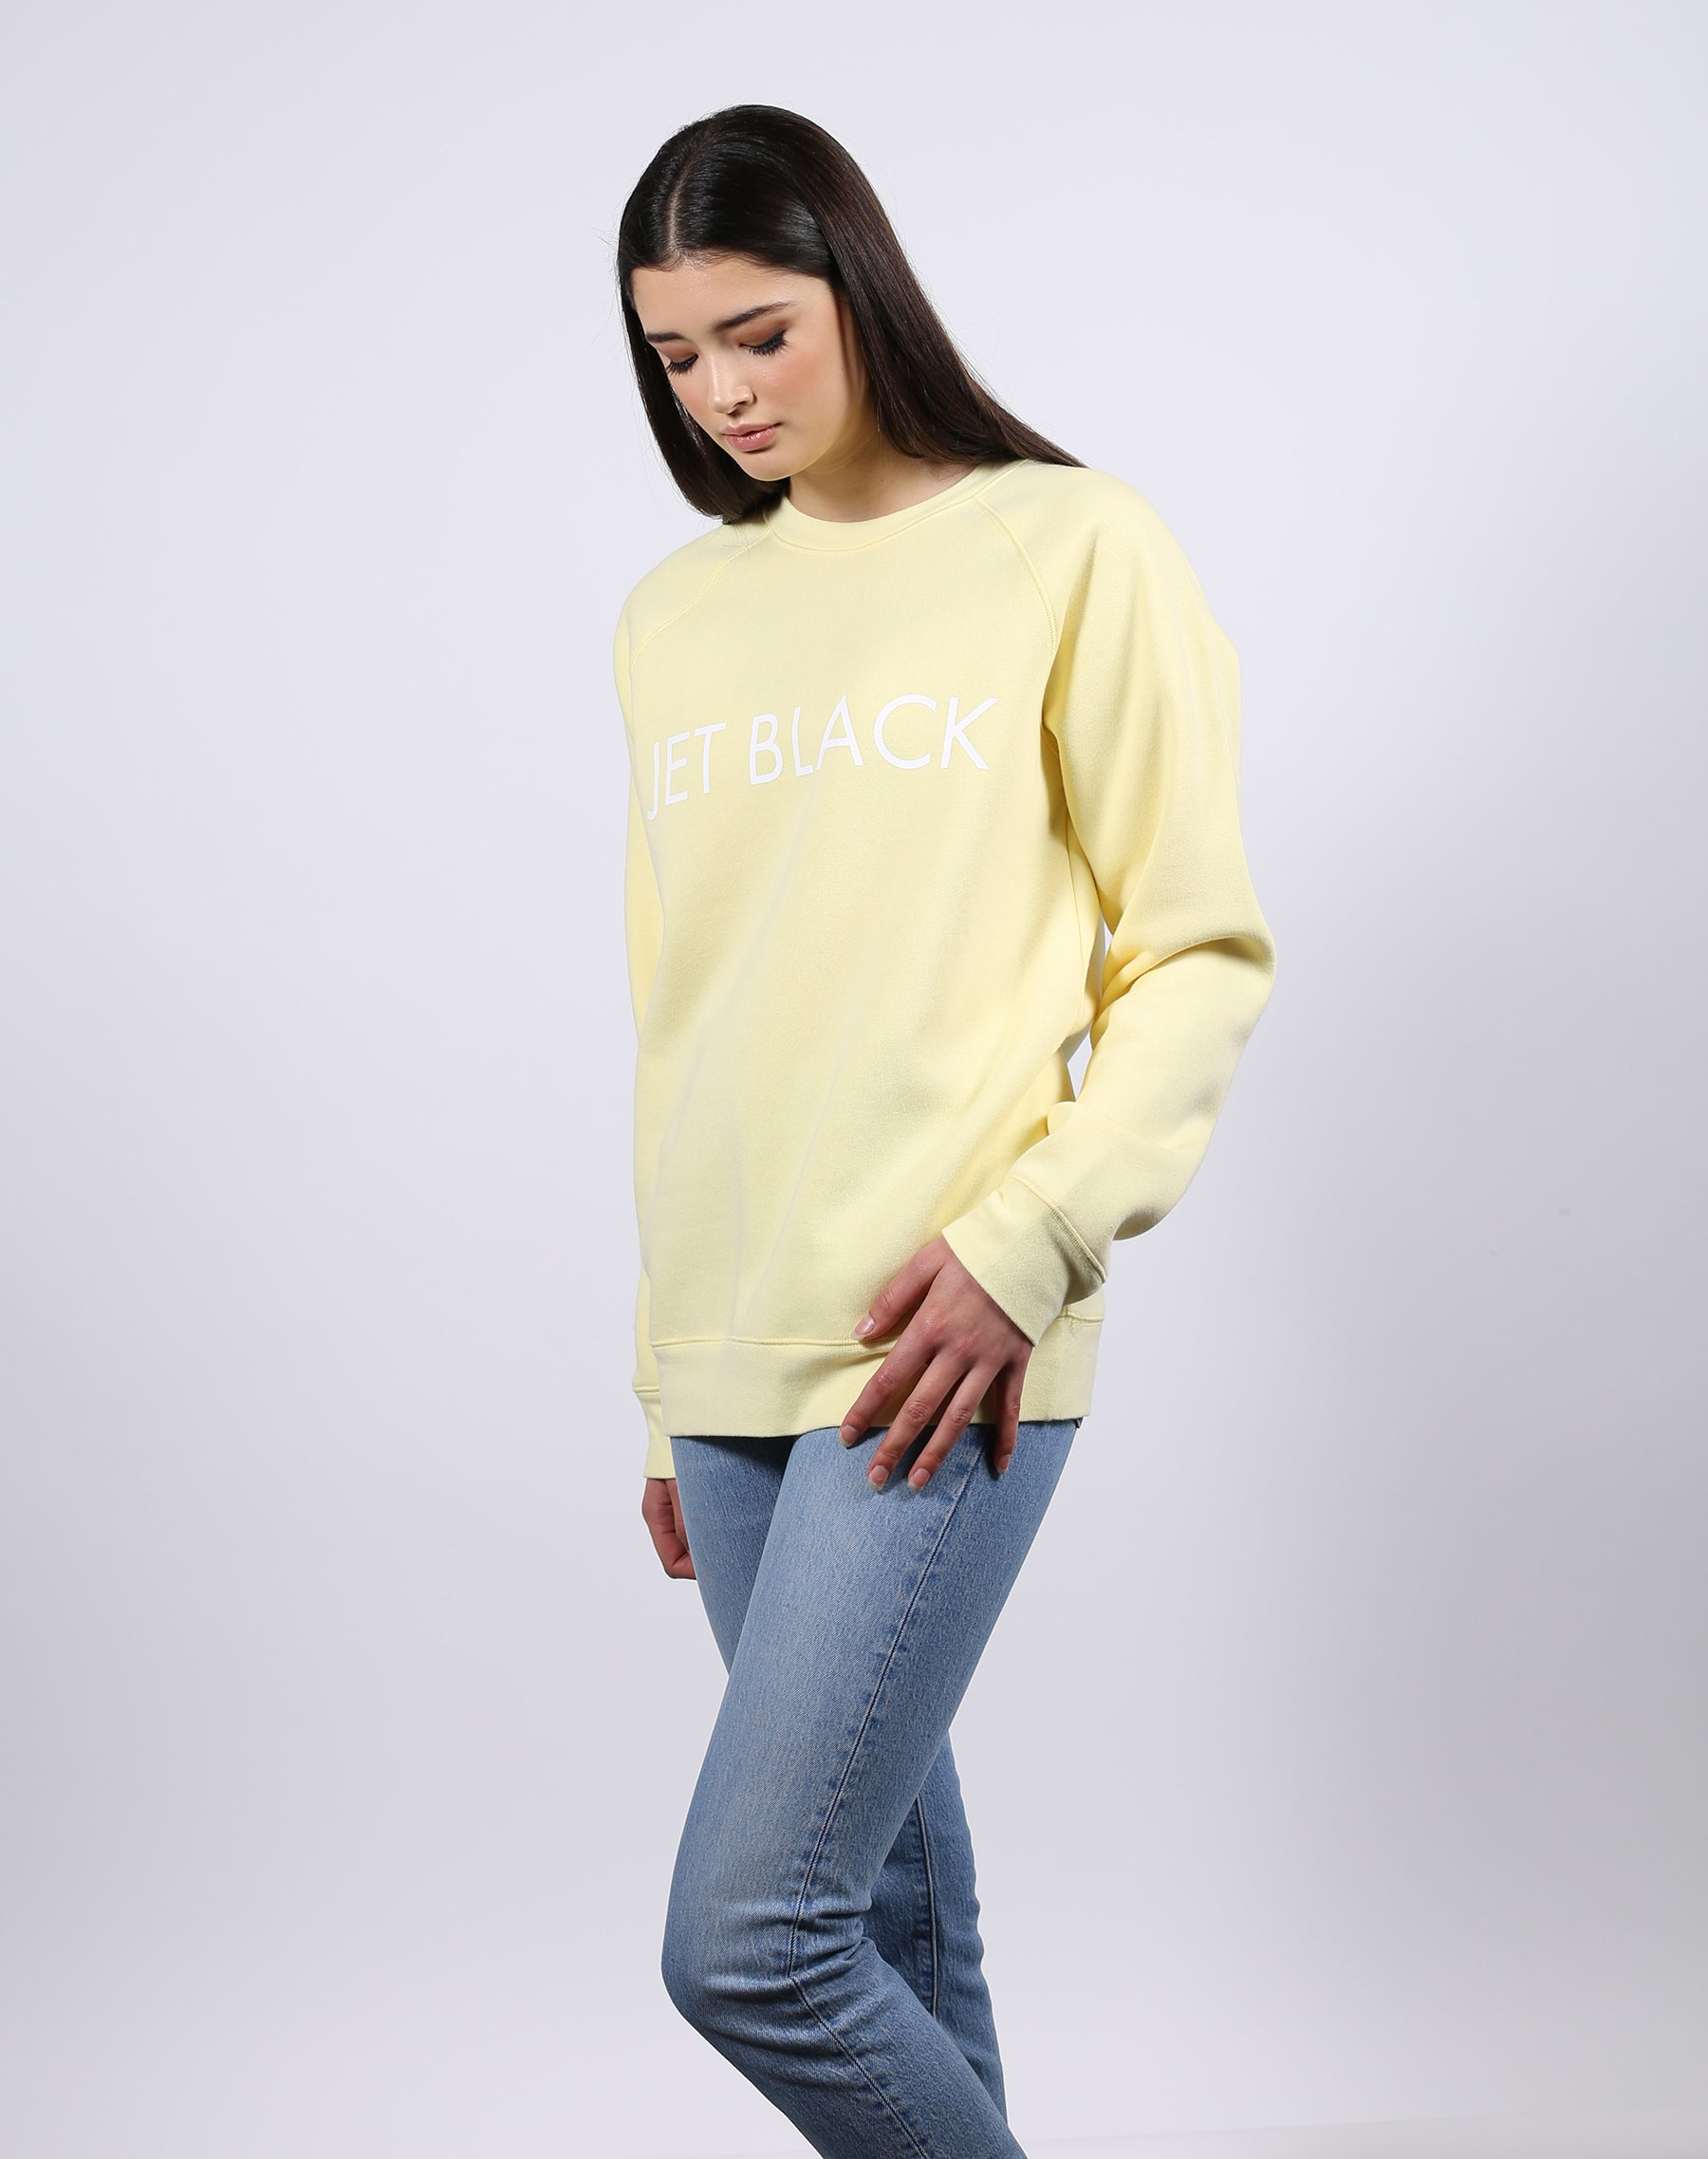 This is a Ecommerce photo of the Jet Black Lemon Classic Crew neck Sweatshirt by Brunette the Label